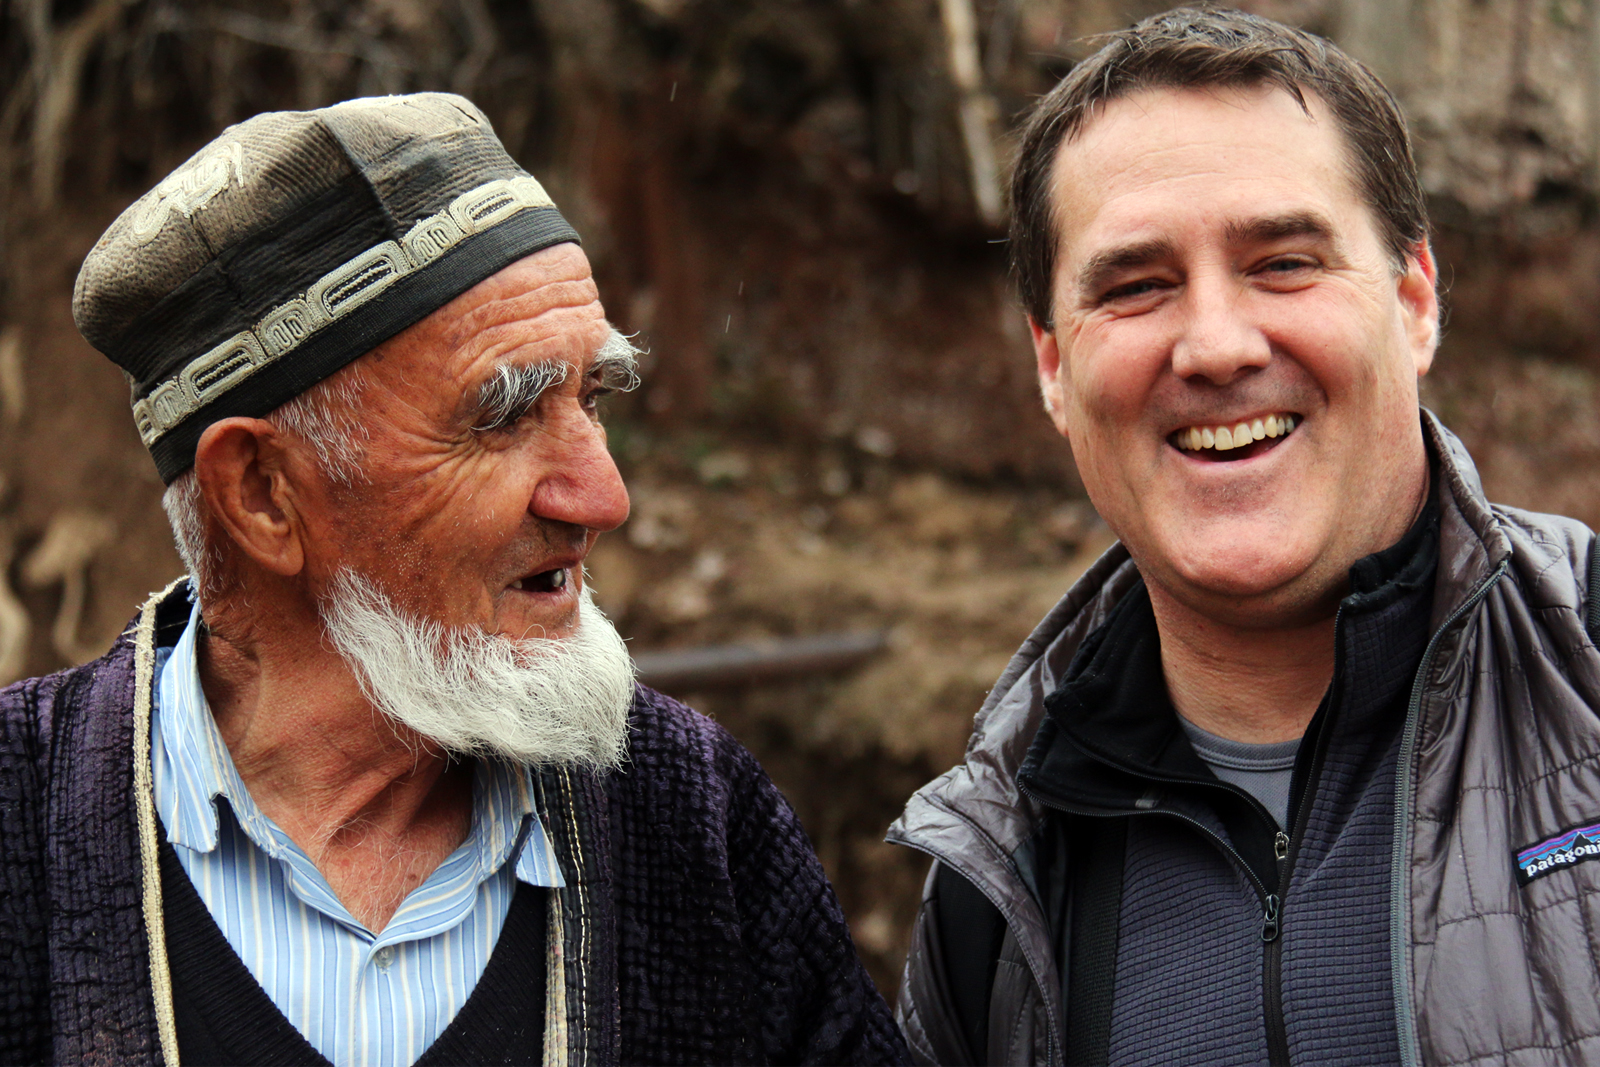 Tajikistan local with tourist